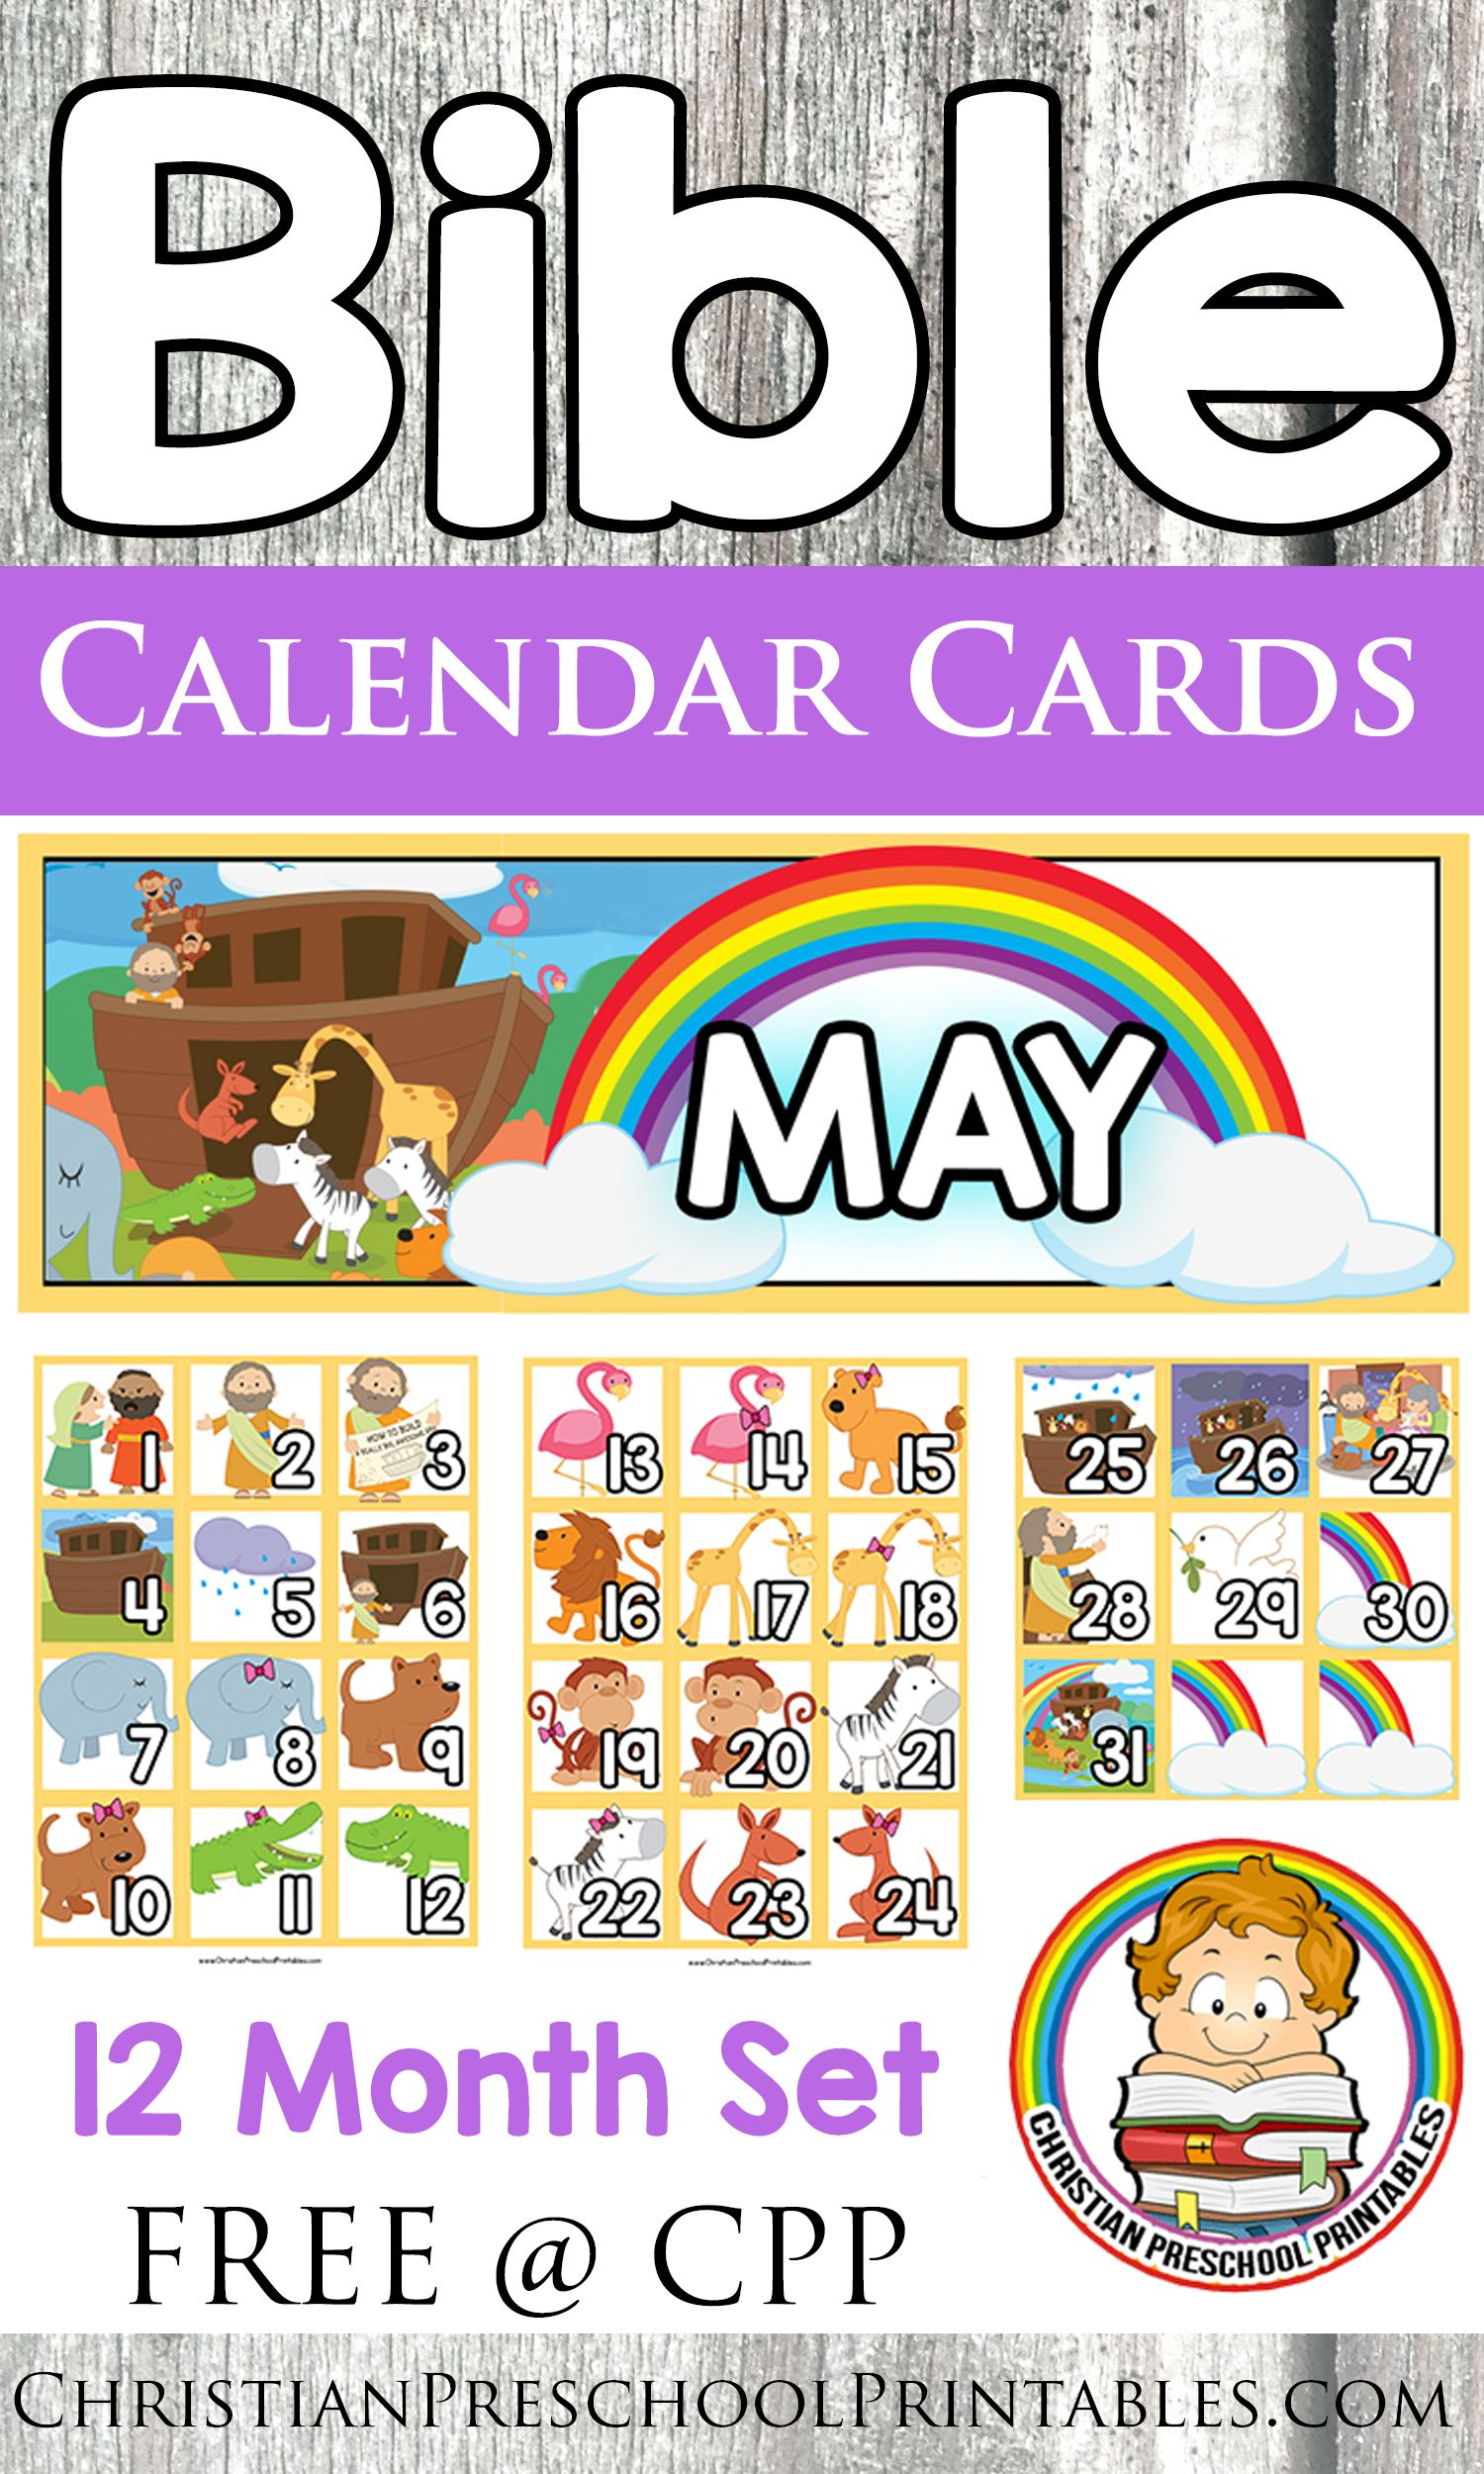 Free Bible Calendar Cards 12 Month Set Of Thematic Bible Resources For Your Home Preschool Or